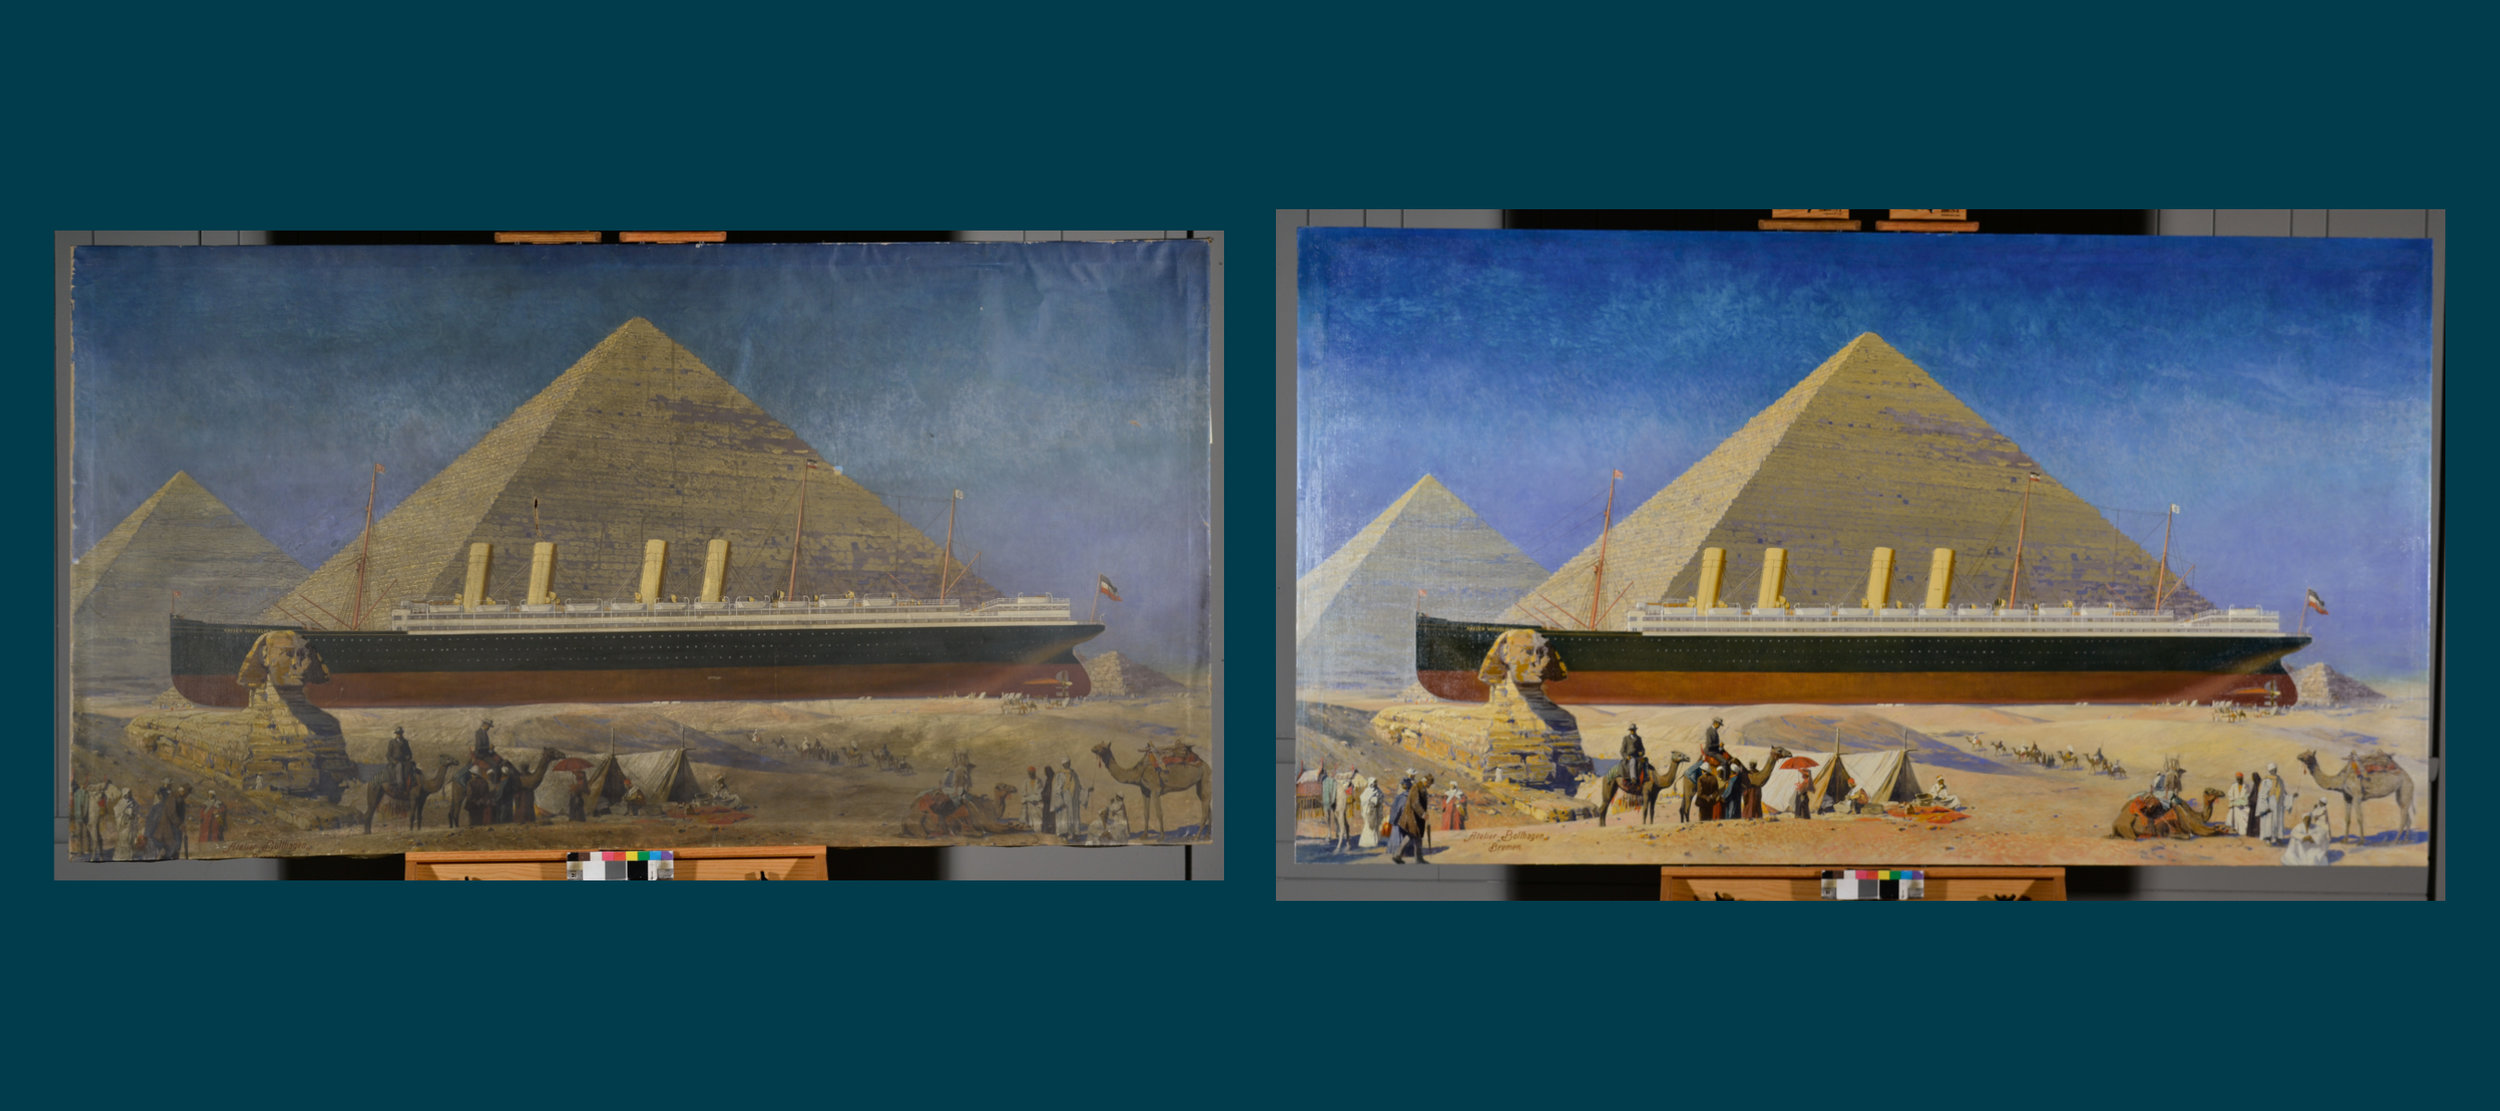 Before and After Treatment of the Steamship Kaiser Wilhelm II Among the Pyramids, By Atelier Otto Bollhagen